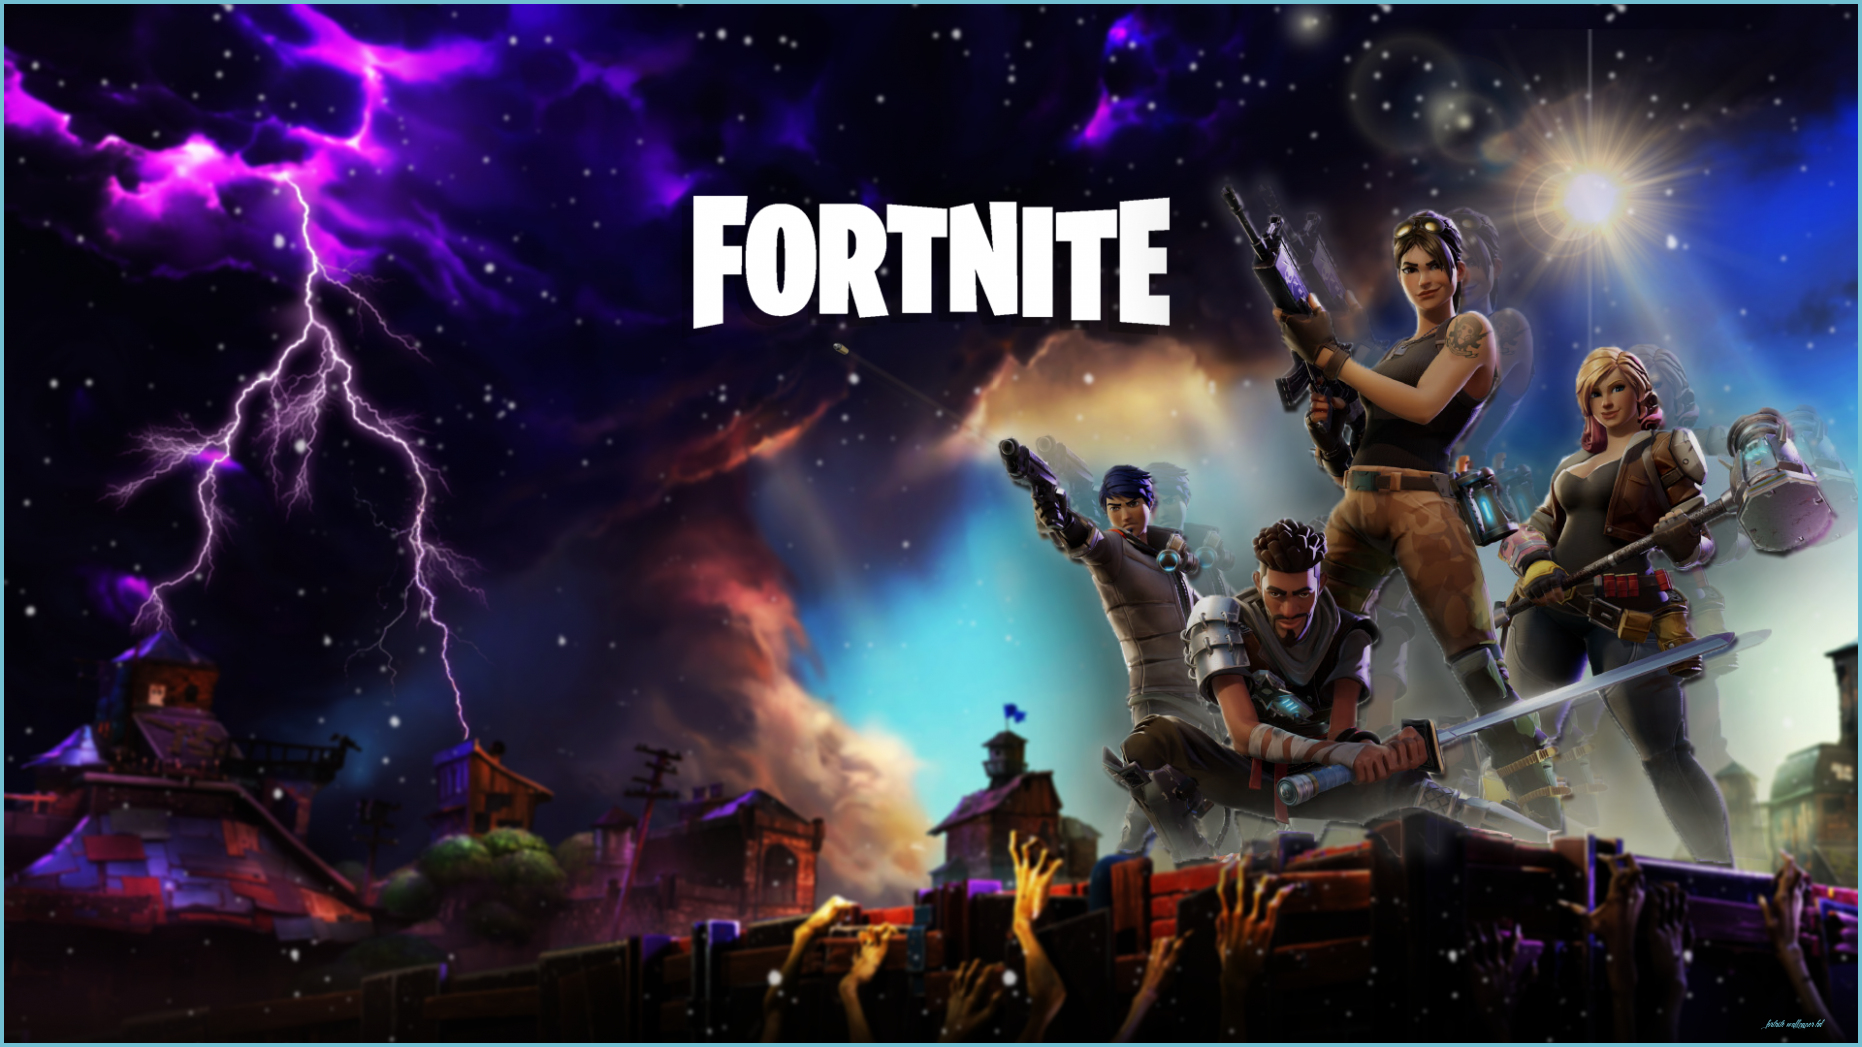 fortnite wallpapers in 8 Background images wallpapers   fortnite 1862x1047